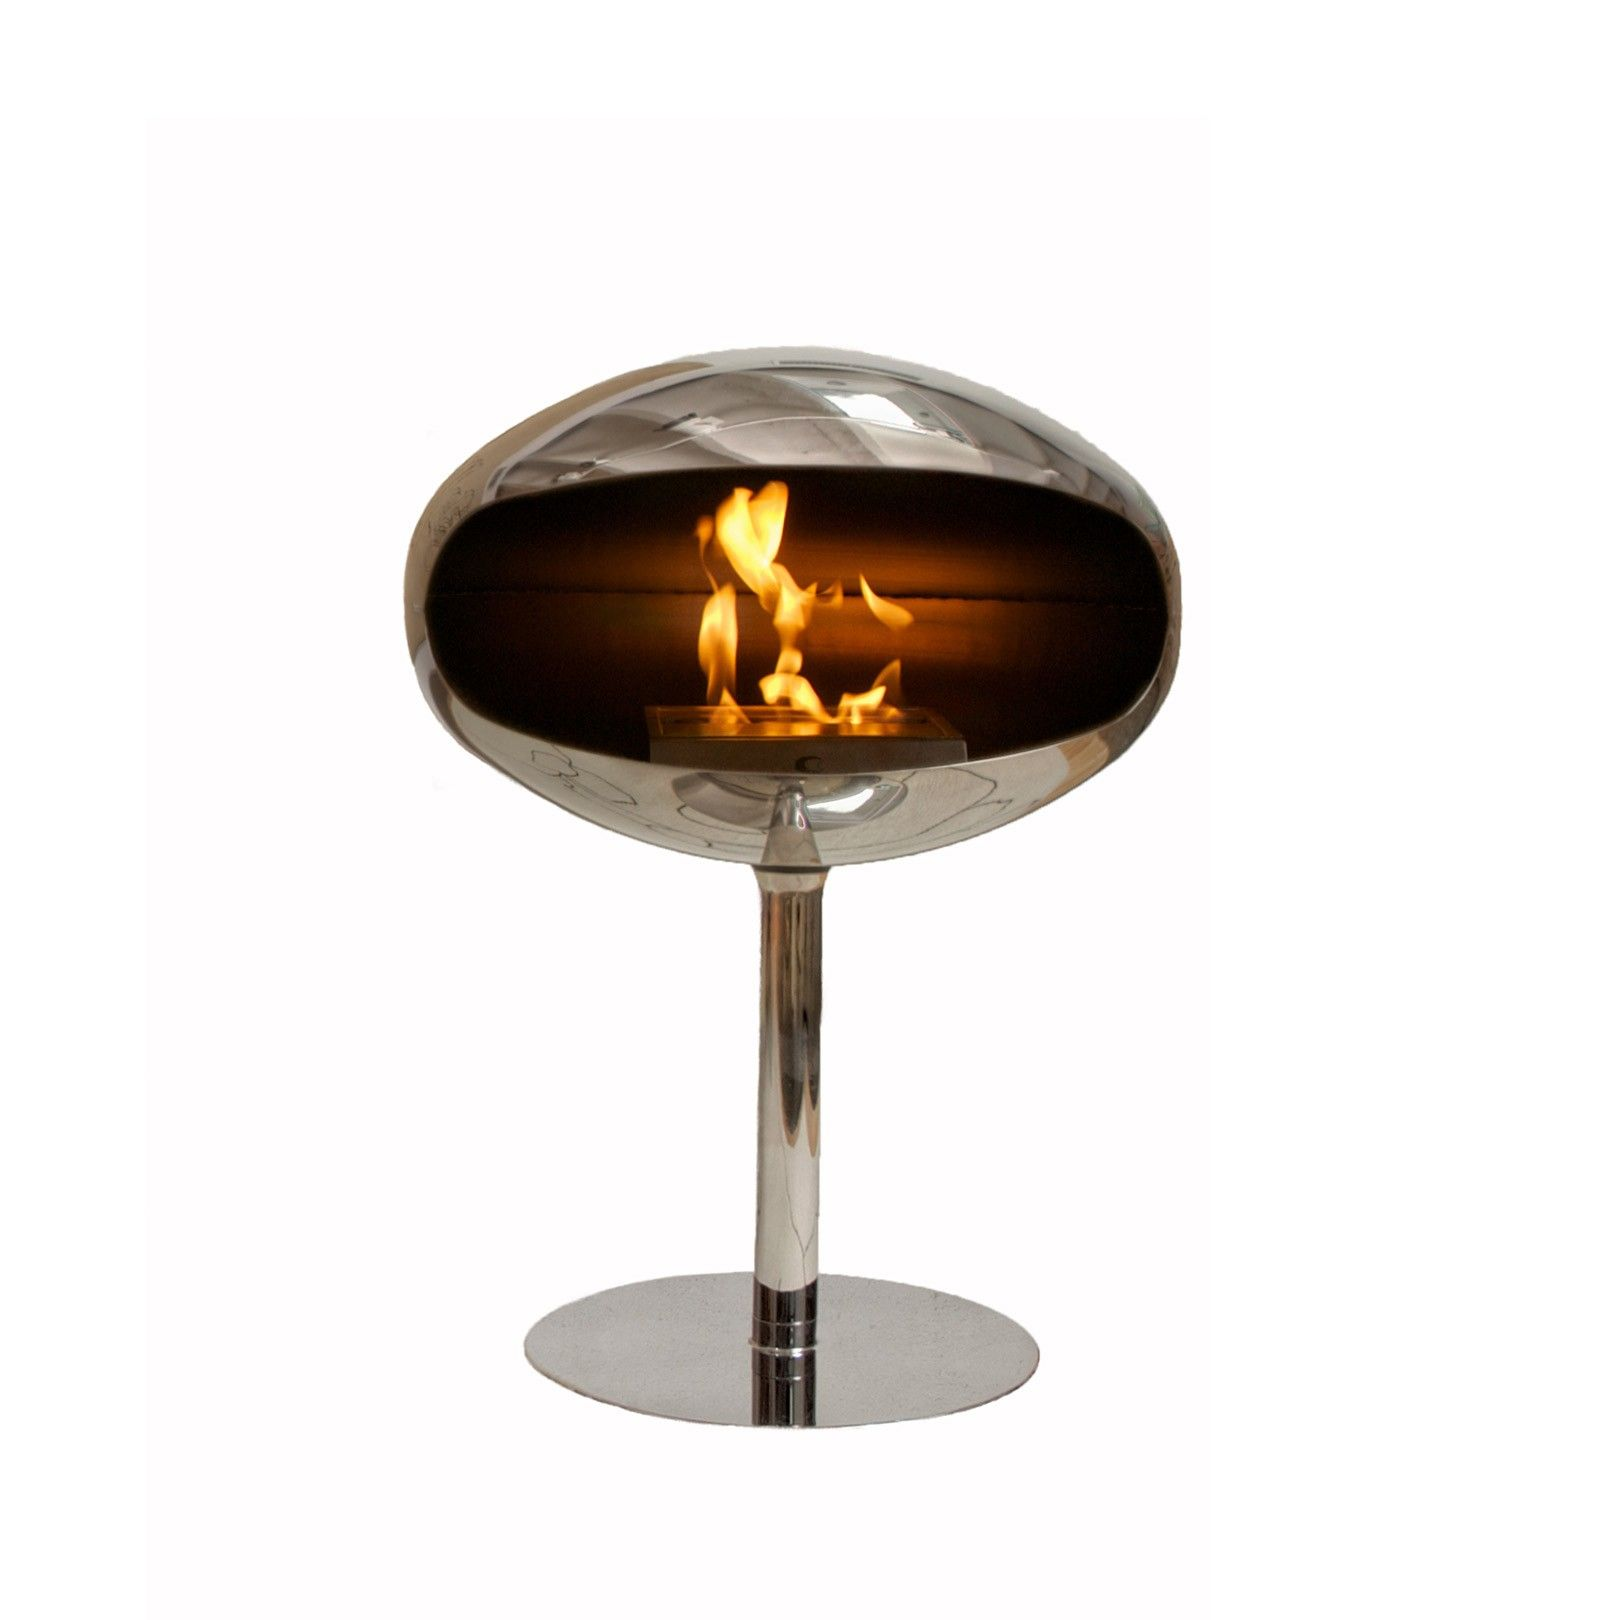 Cocoon Aeris Hanging Fireplace Polished Steel For both indoors